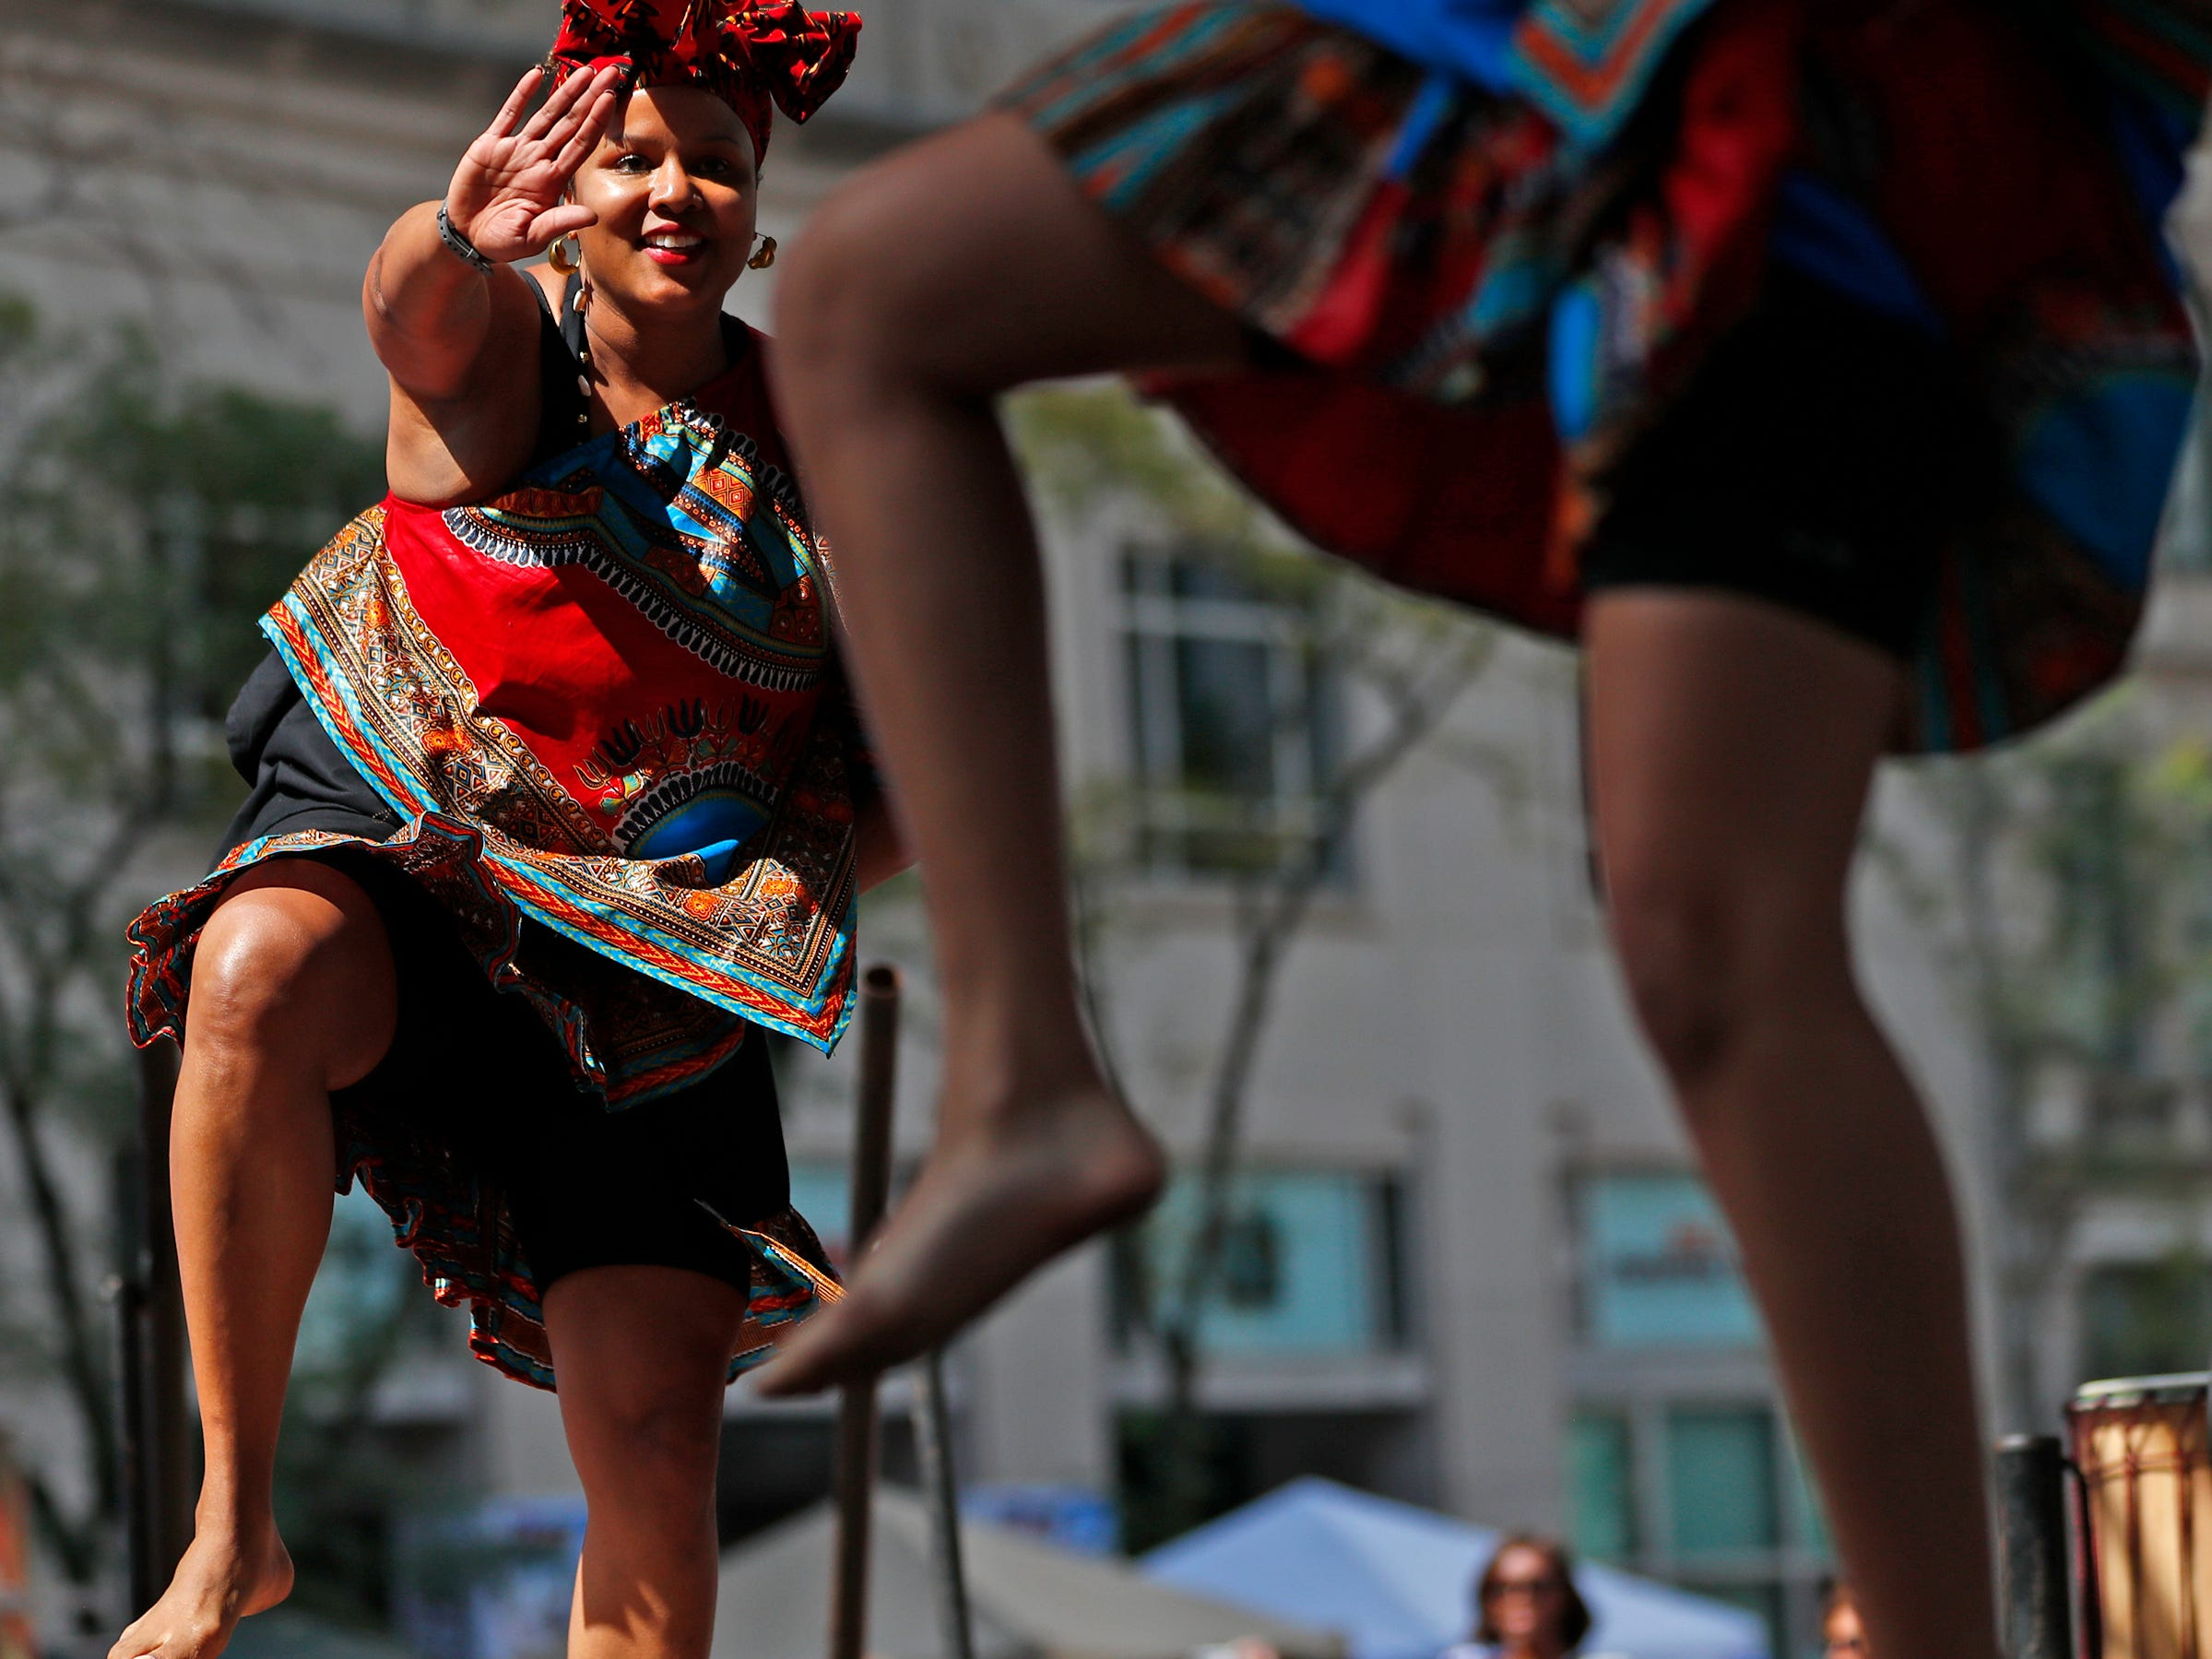 Singers, musicians and dancers from a variety of cultures, including these Ronne Stone, left, from the Epiphany Dance Collective, performed during the YMCA World Fest, on Monument Circle, Thursday, Sept. 13, 2018. YMCA of Greater Indianapolis hosts the free event that celebrates cultures including international food vendors, music, sports, and performers.